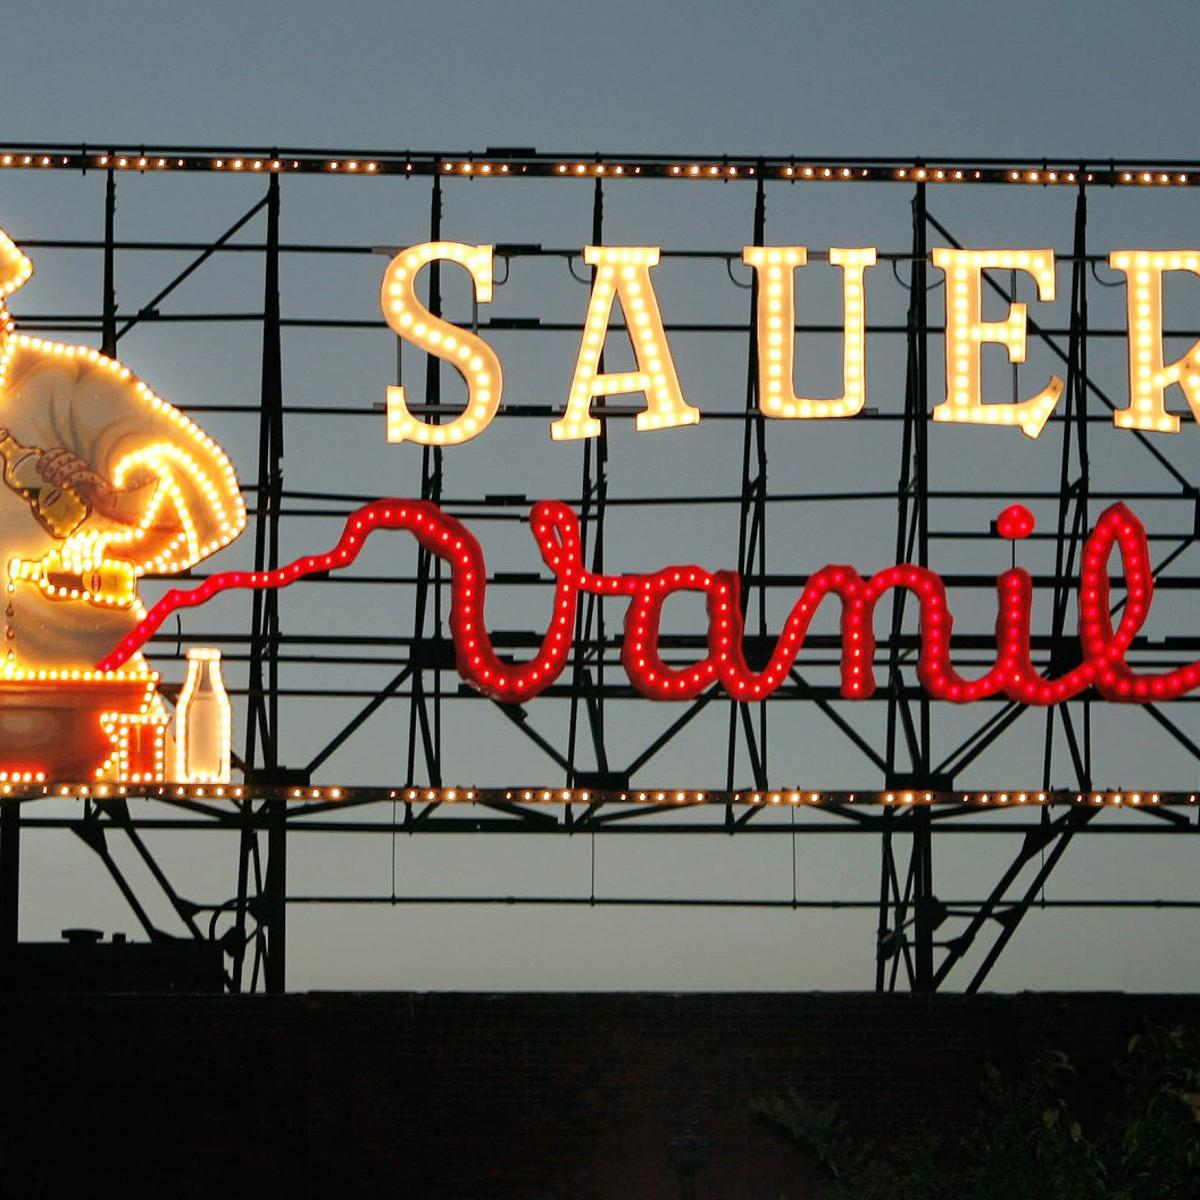 N C -based private equity firm completes acquisition of C F  Sauer's